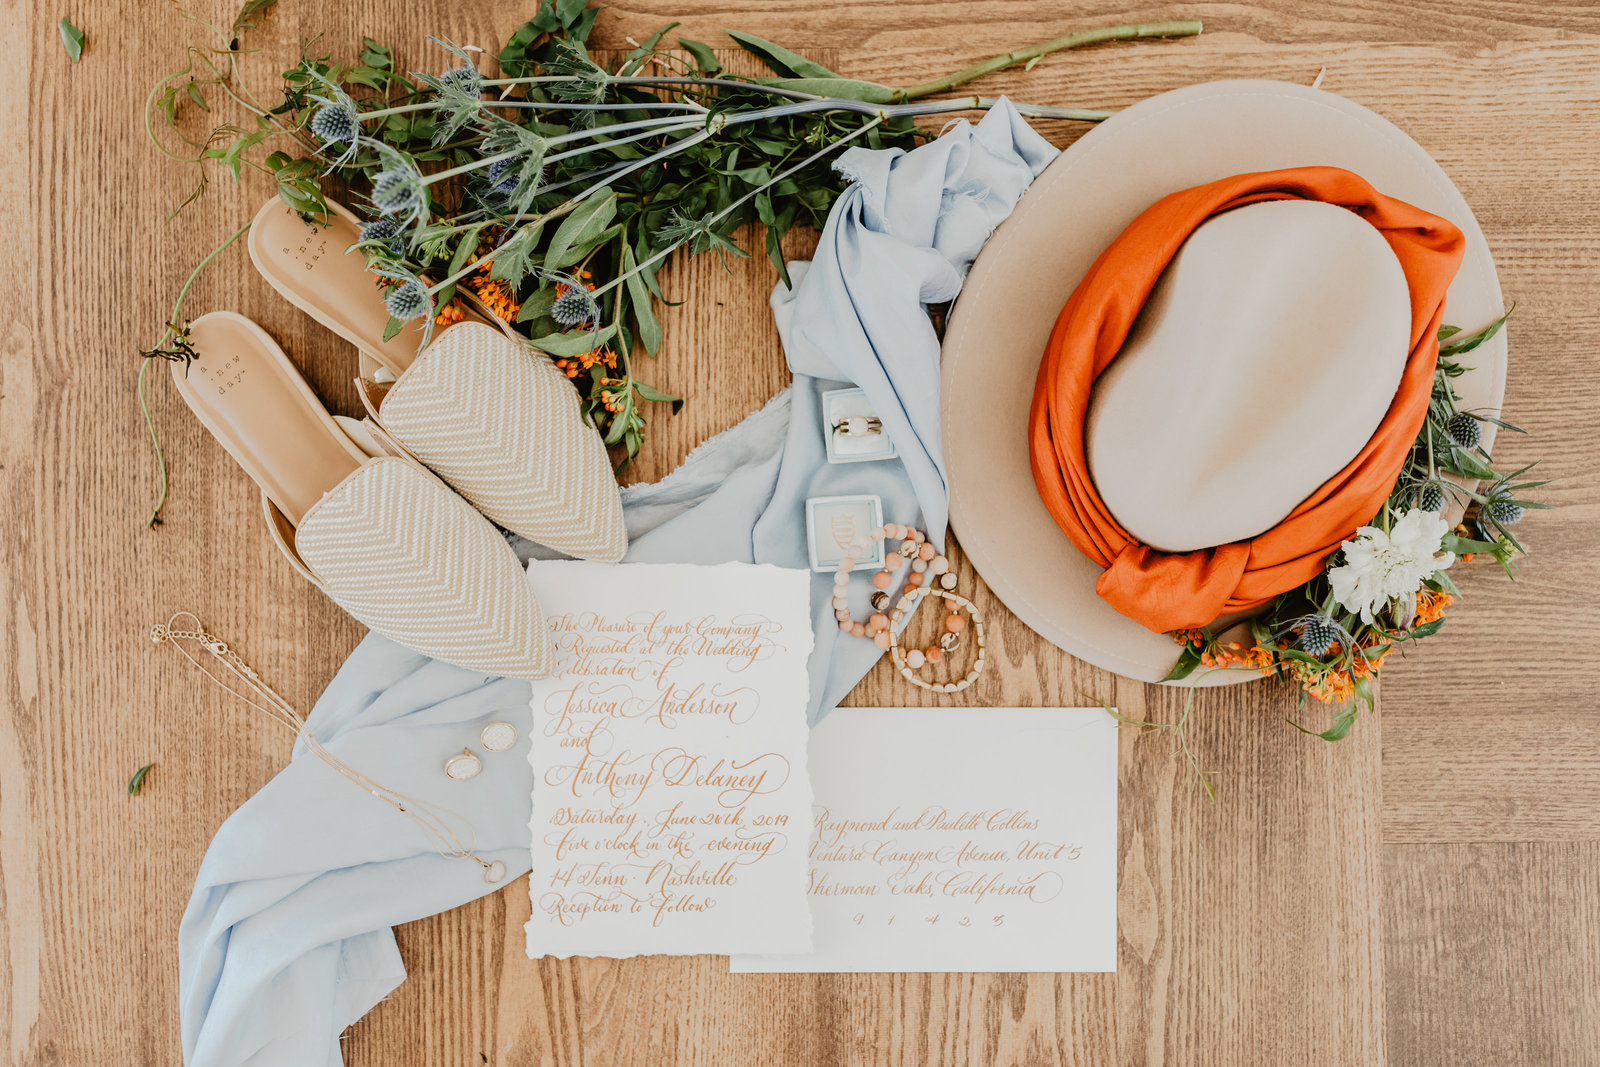 Hats are a good change to the traditional bridal accessories with these wedding day details at 14 Tenn